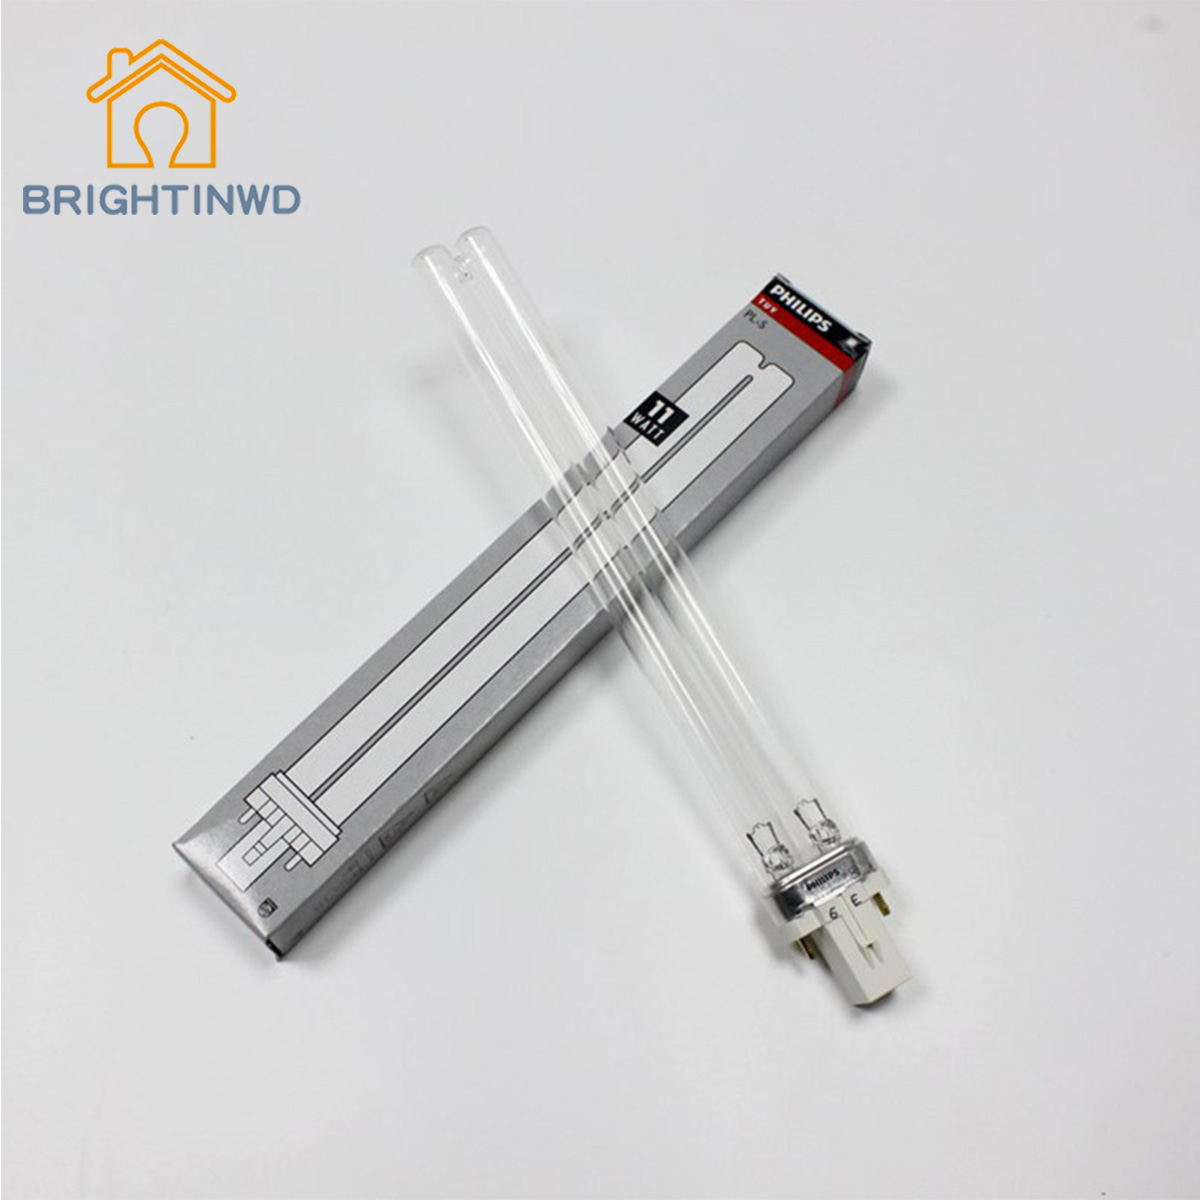 BRIGHTINWD UV Disinfection Lamp PL S TUV 9W UVC Sterilization Lamp Sterilization ...